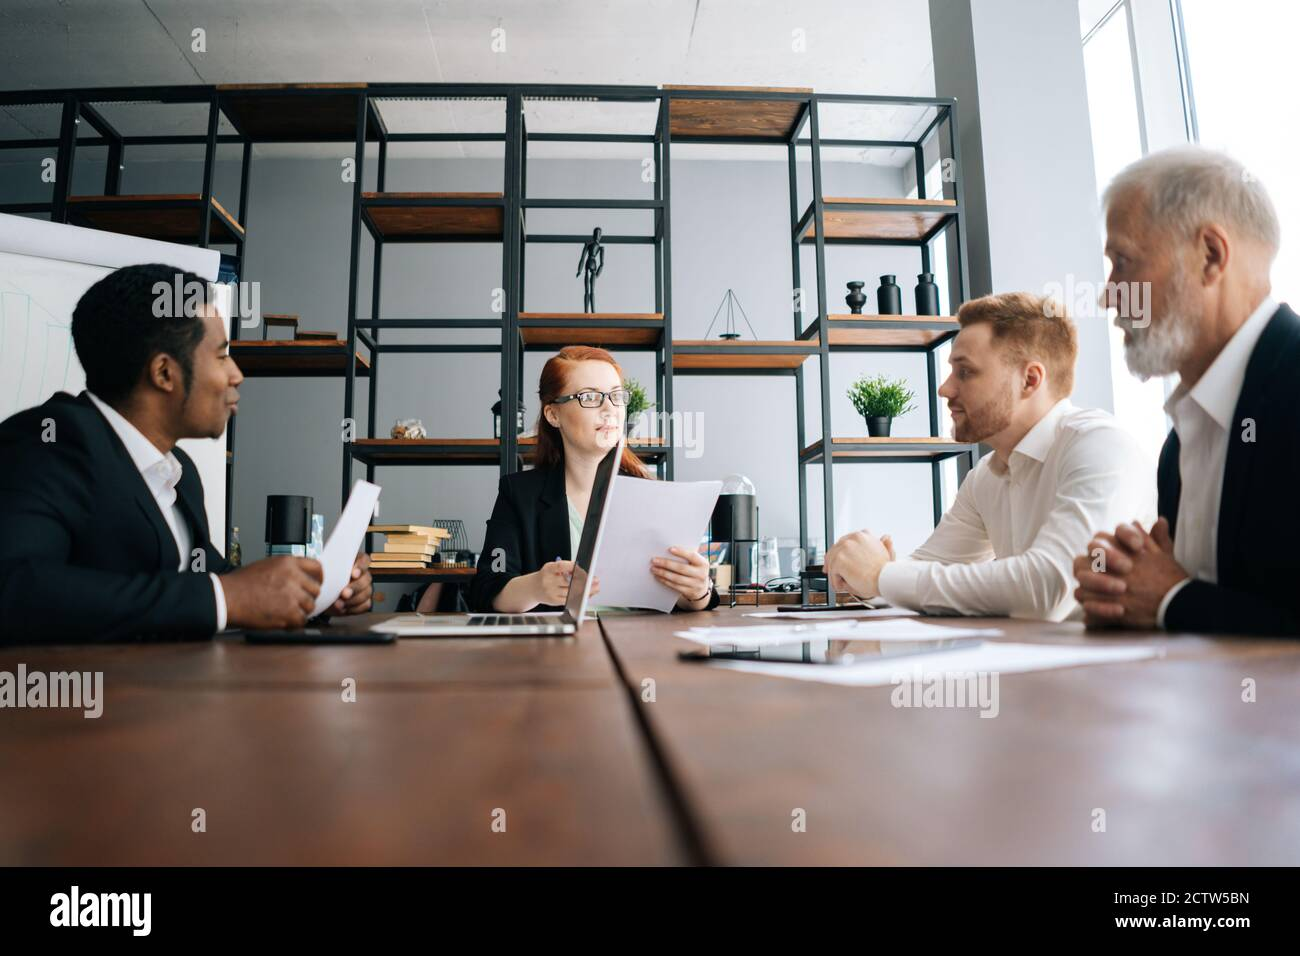 Motivated business woman leader holds meeting with employees at office desk, shooting from below. Stock Photo